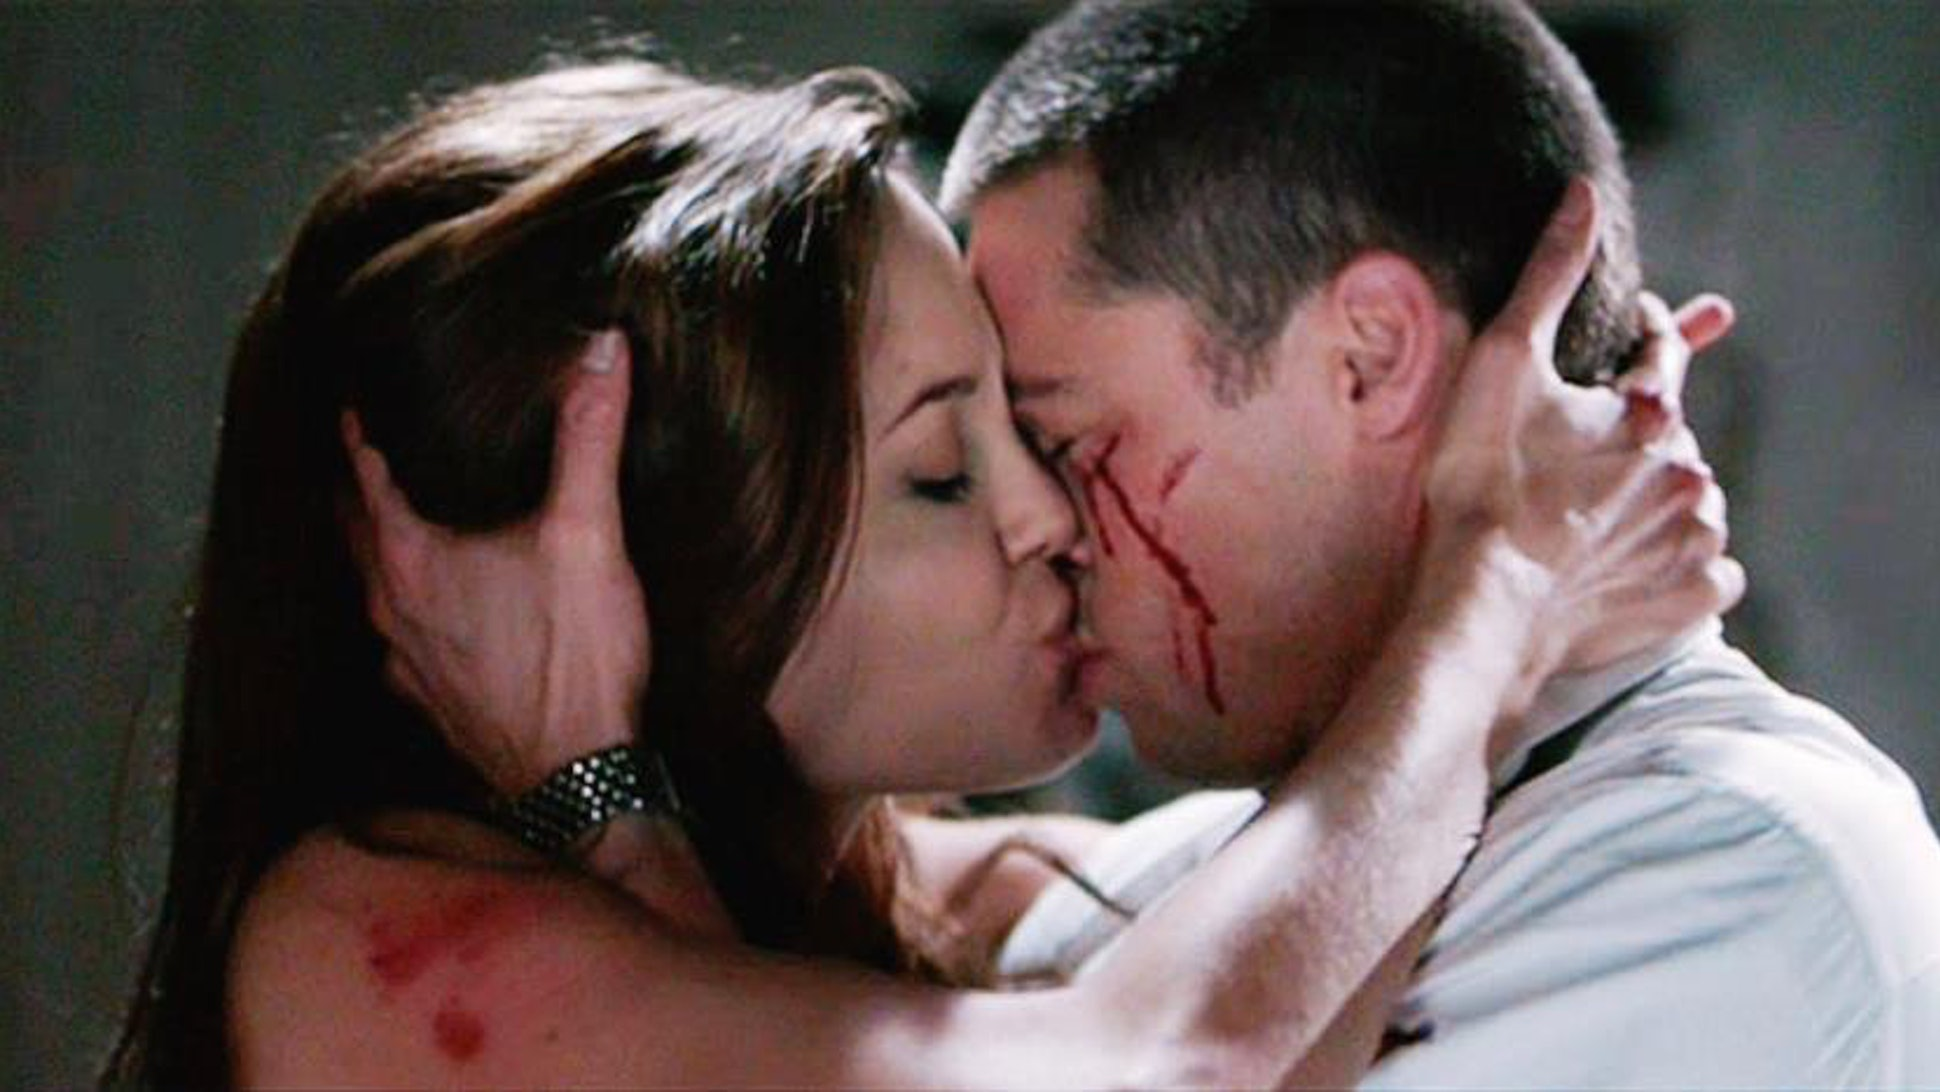 mr and mrs smith movie sex love scene